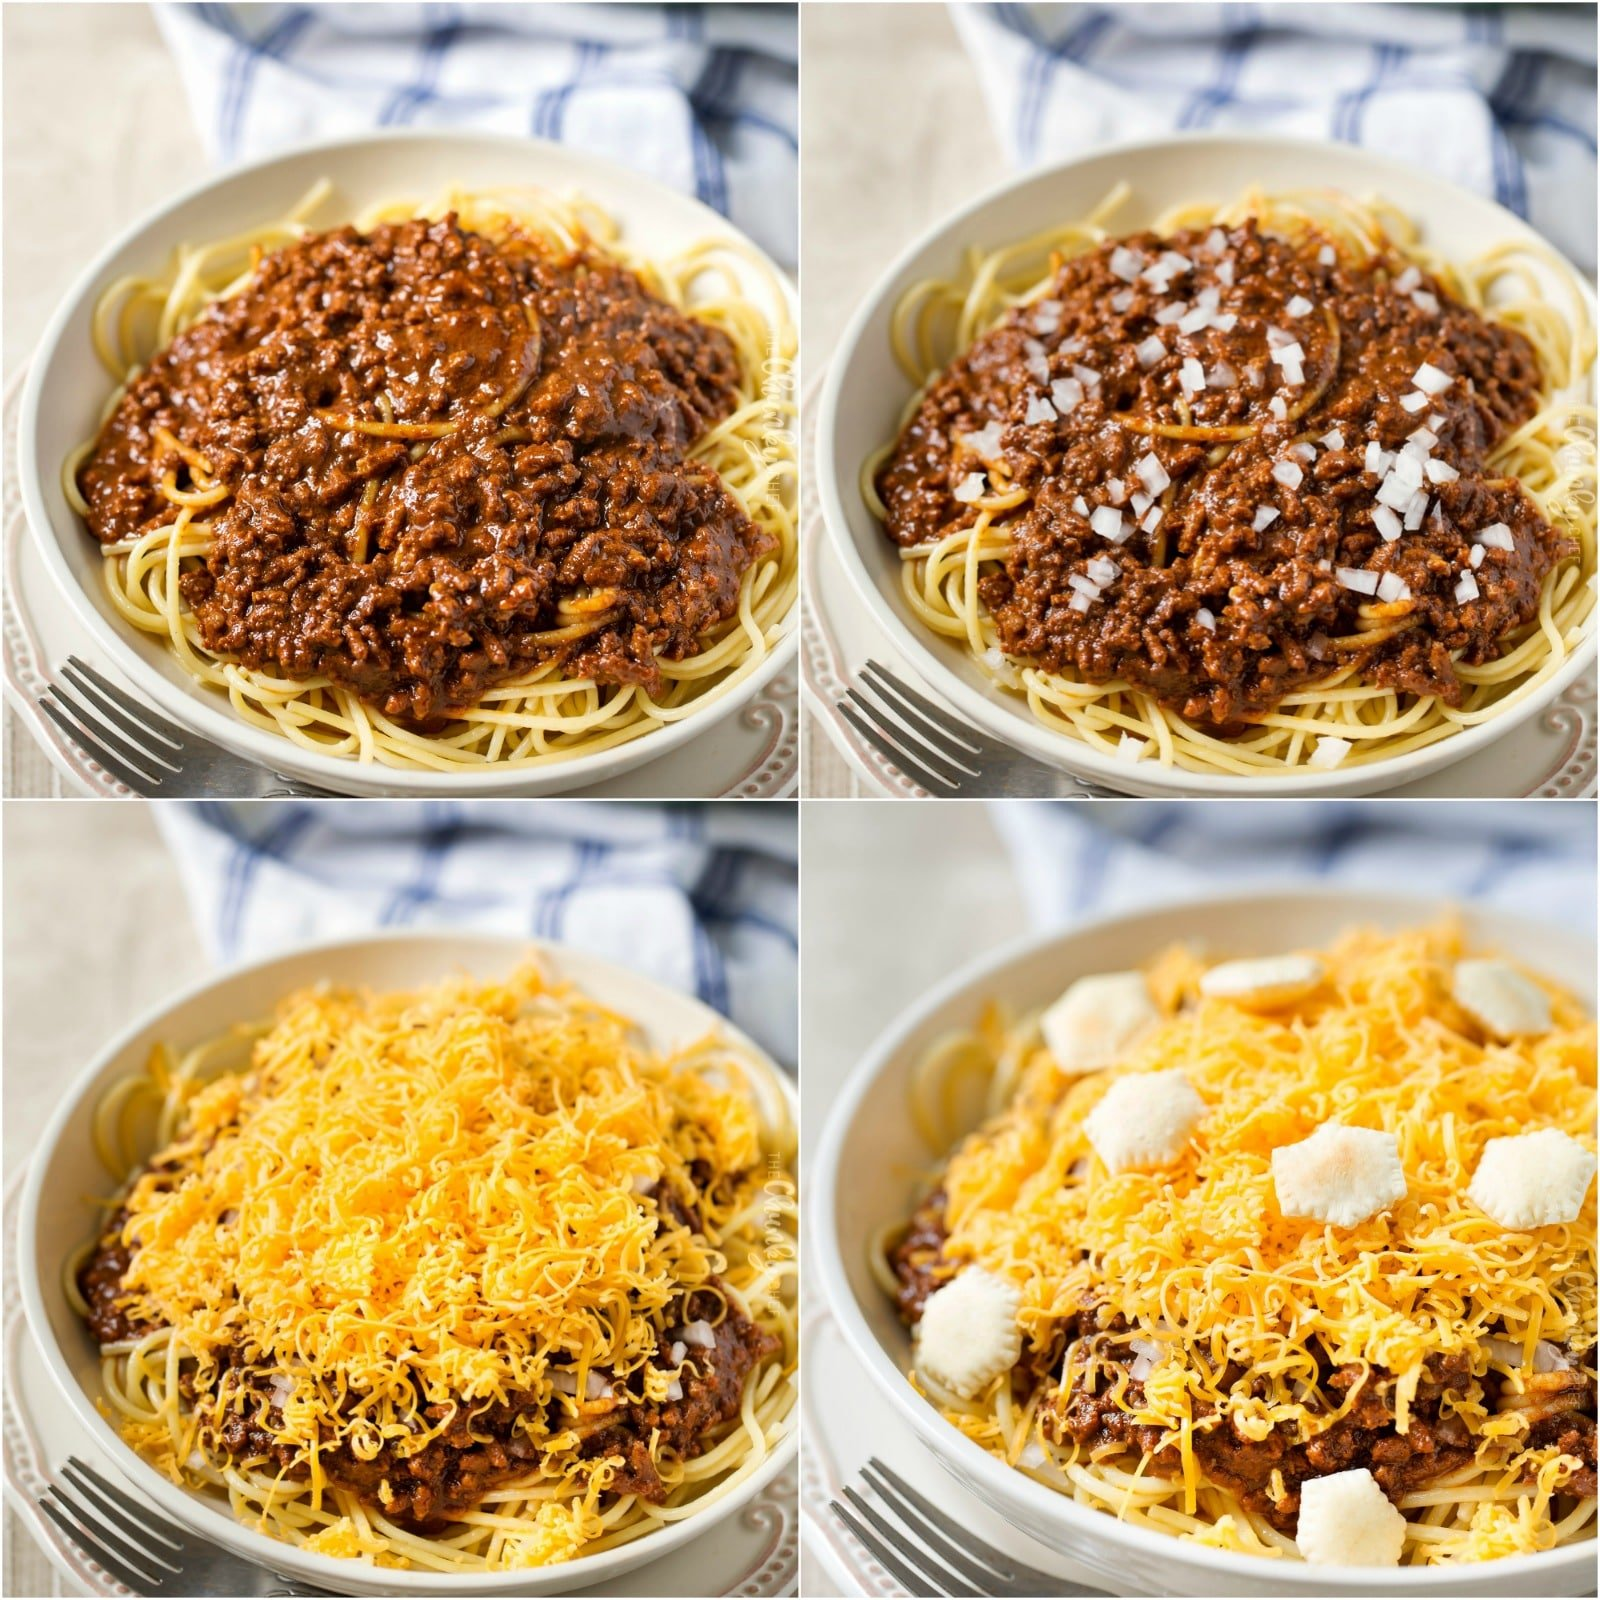 Breakdown collage of Cincinnati chili 4 way